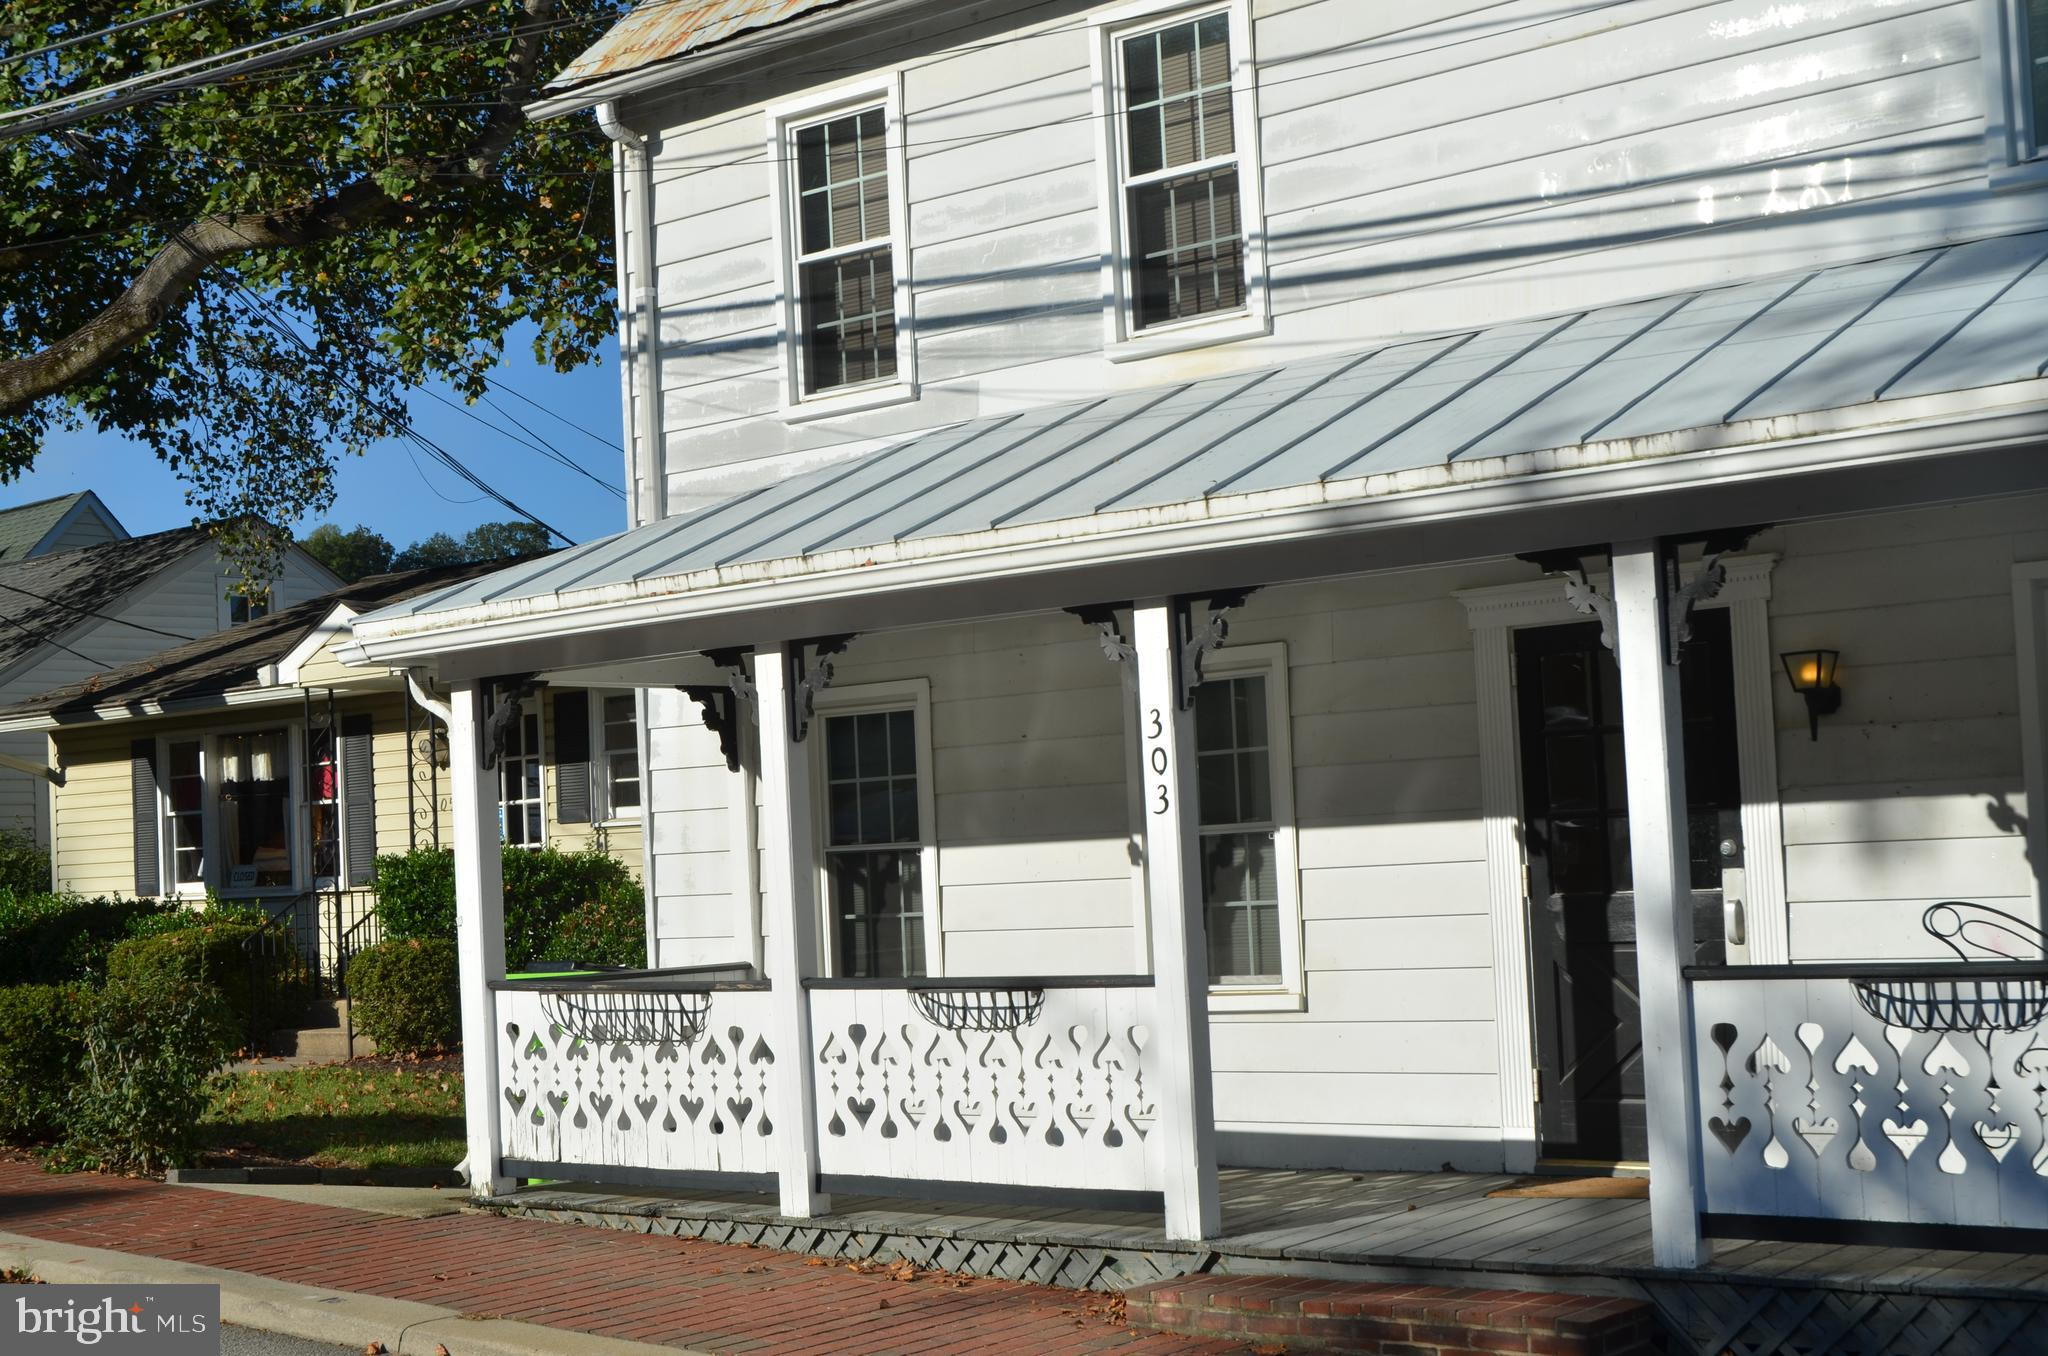 RETAIL *** OFFICE ***  SERVICES  ***  GROUND FLOOR UNIT *** FULL NEWER KITCHEN WITH GRANITE COUNTERS , NEW CABINETS AND APPLIANCES ***NEWER FULL BATHROOM *** NEWER HARDWOOD FLOORING *** FRESH NEUTRAL PAINT *** NO SMOKING,  NO VAPING ***WATER AND SEWER INCLUDED IN RENT *** PRIME LOCATION IN THE HEART OF OCCOQUAN - WALK TO RIVER, SHOP AND RESTAURANTS - VRE AND I-95 CLOSE BY ***